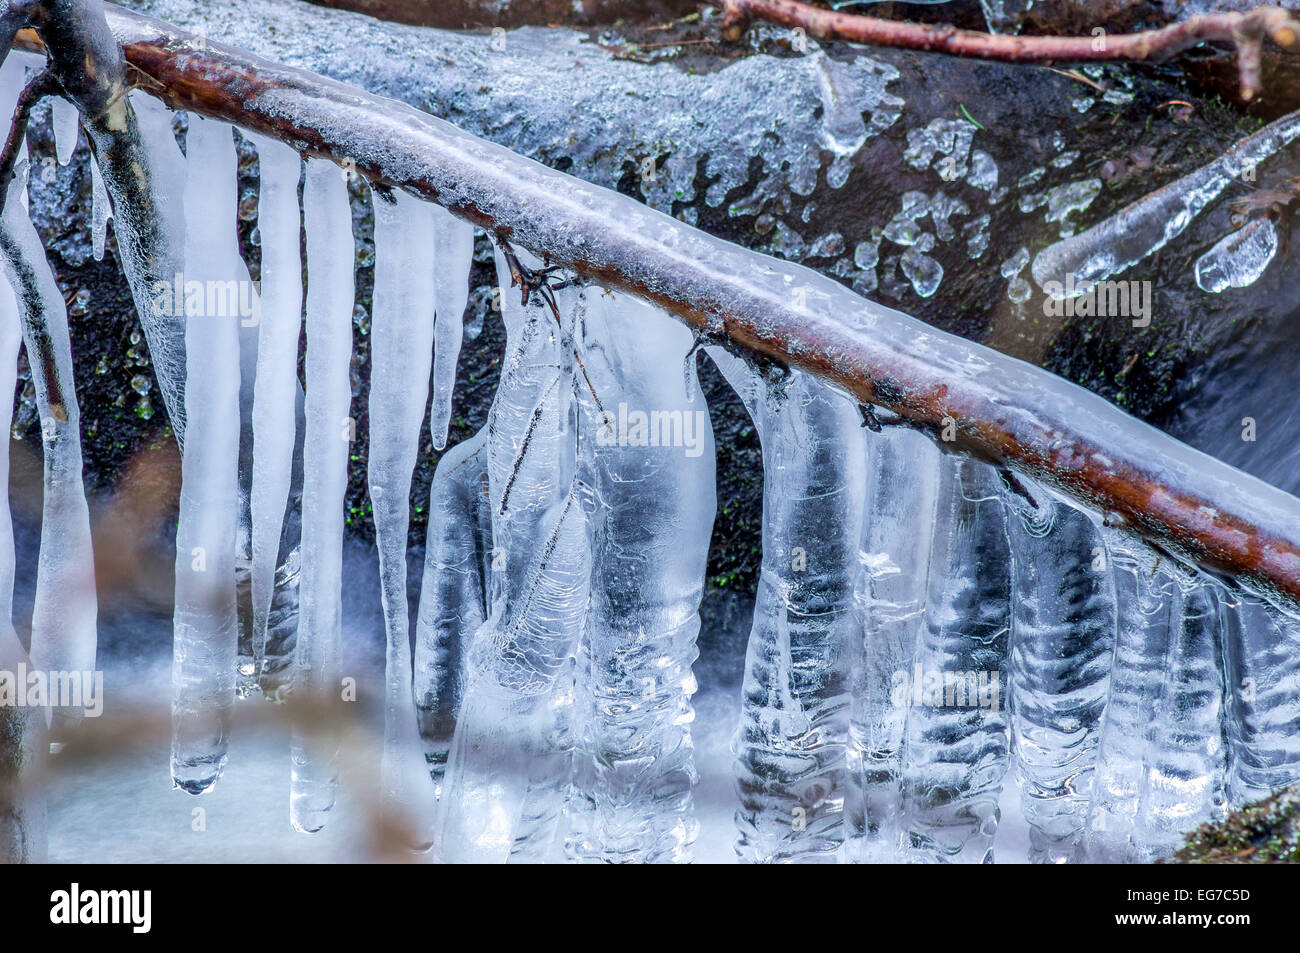 Icicles on a twig - Stock Image